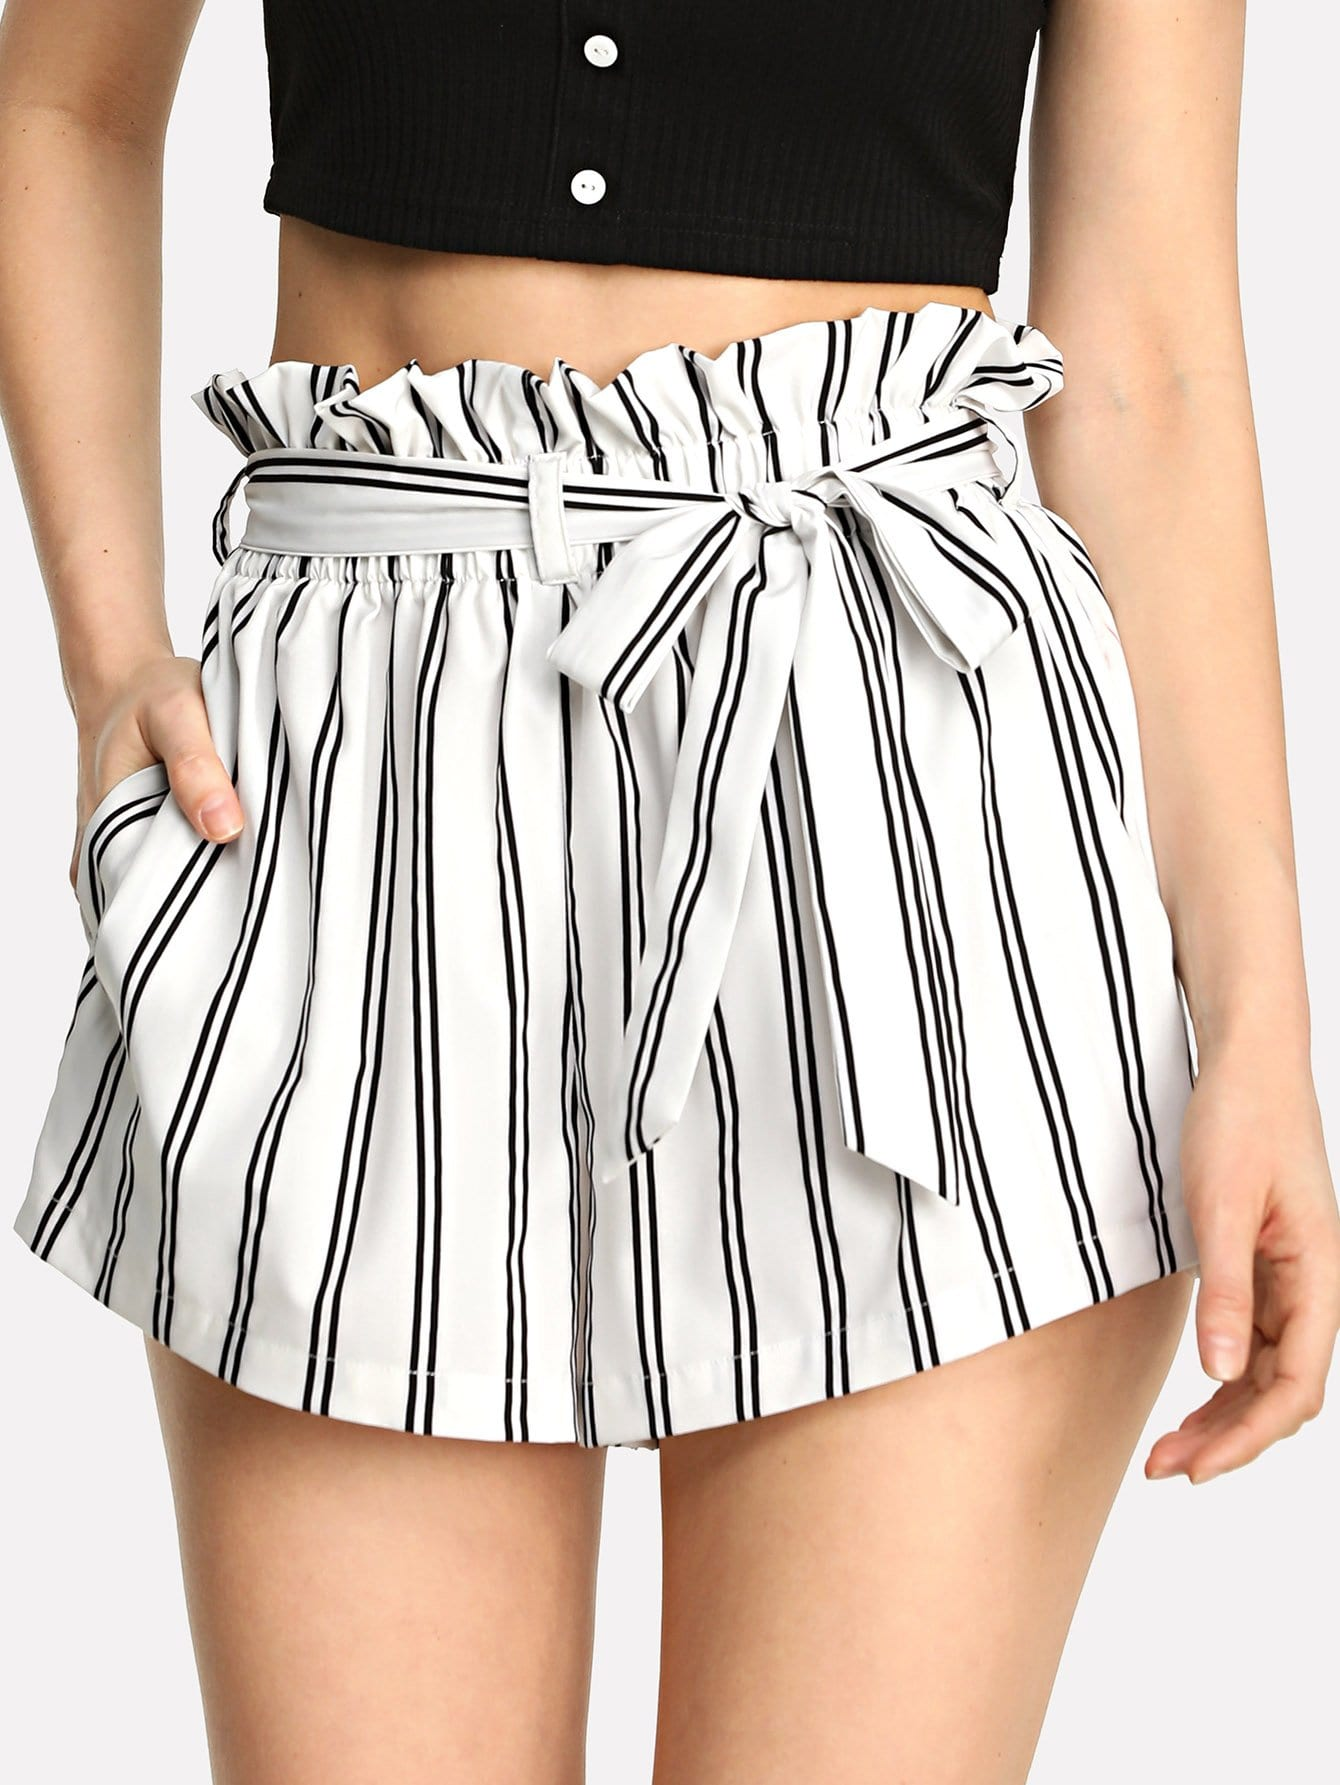 Striped Self Tie Waist Pocket Side Shorts 1set atmega328p ch340g uno r3 development board